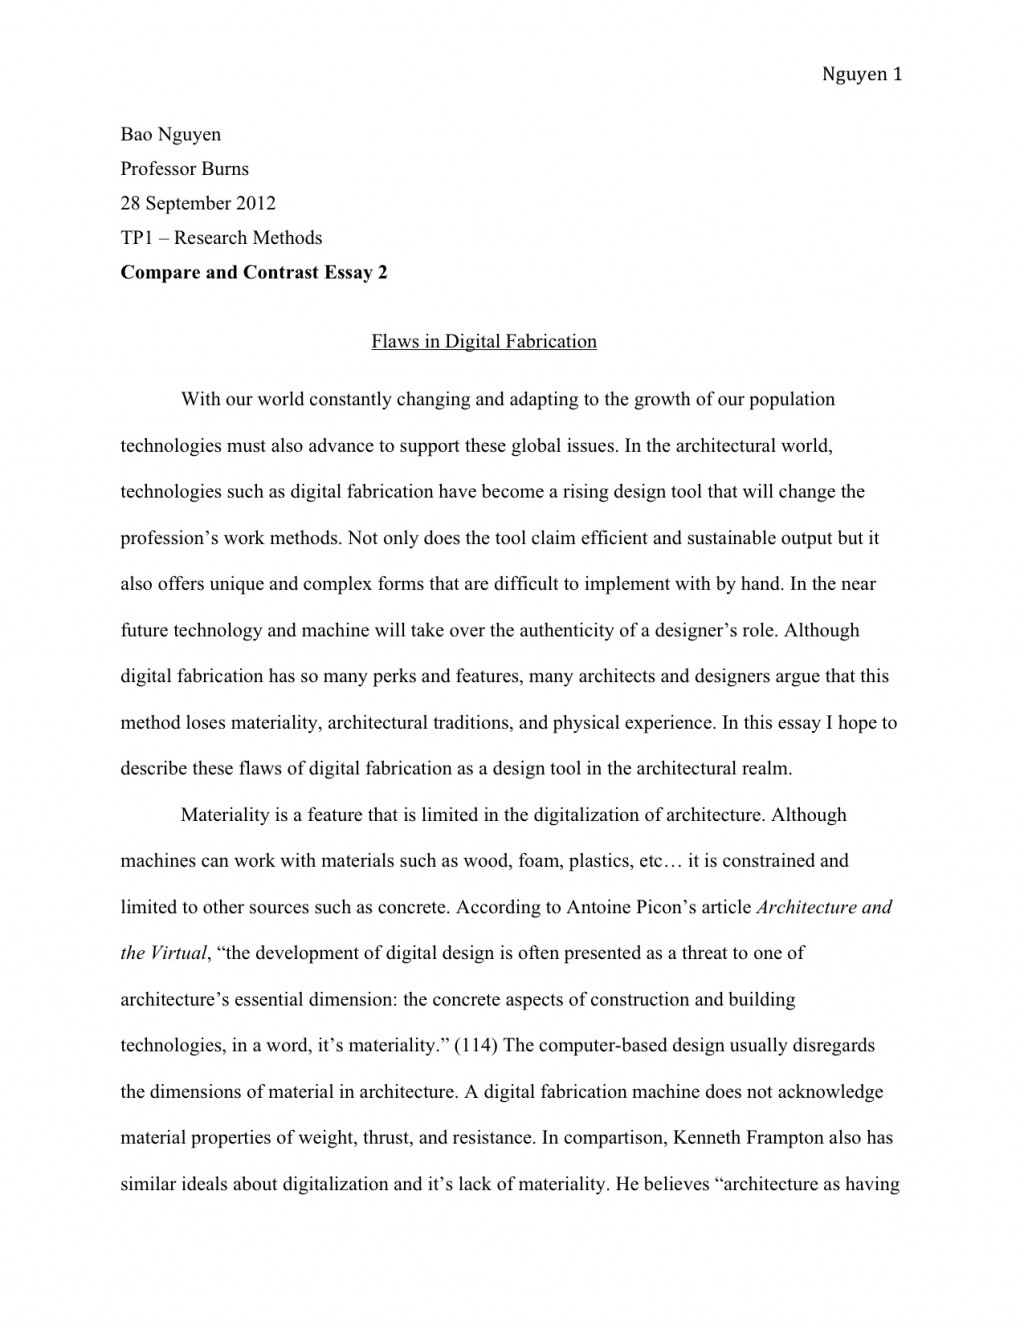 010 Examples Of Hooks For Essays Essay Example Tp1 3 Sensational Some Writing Expository Opinion Large